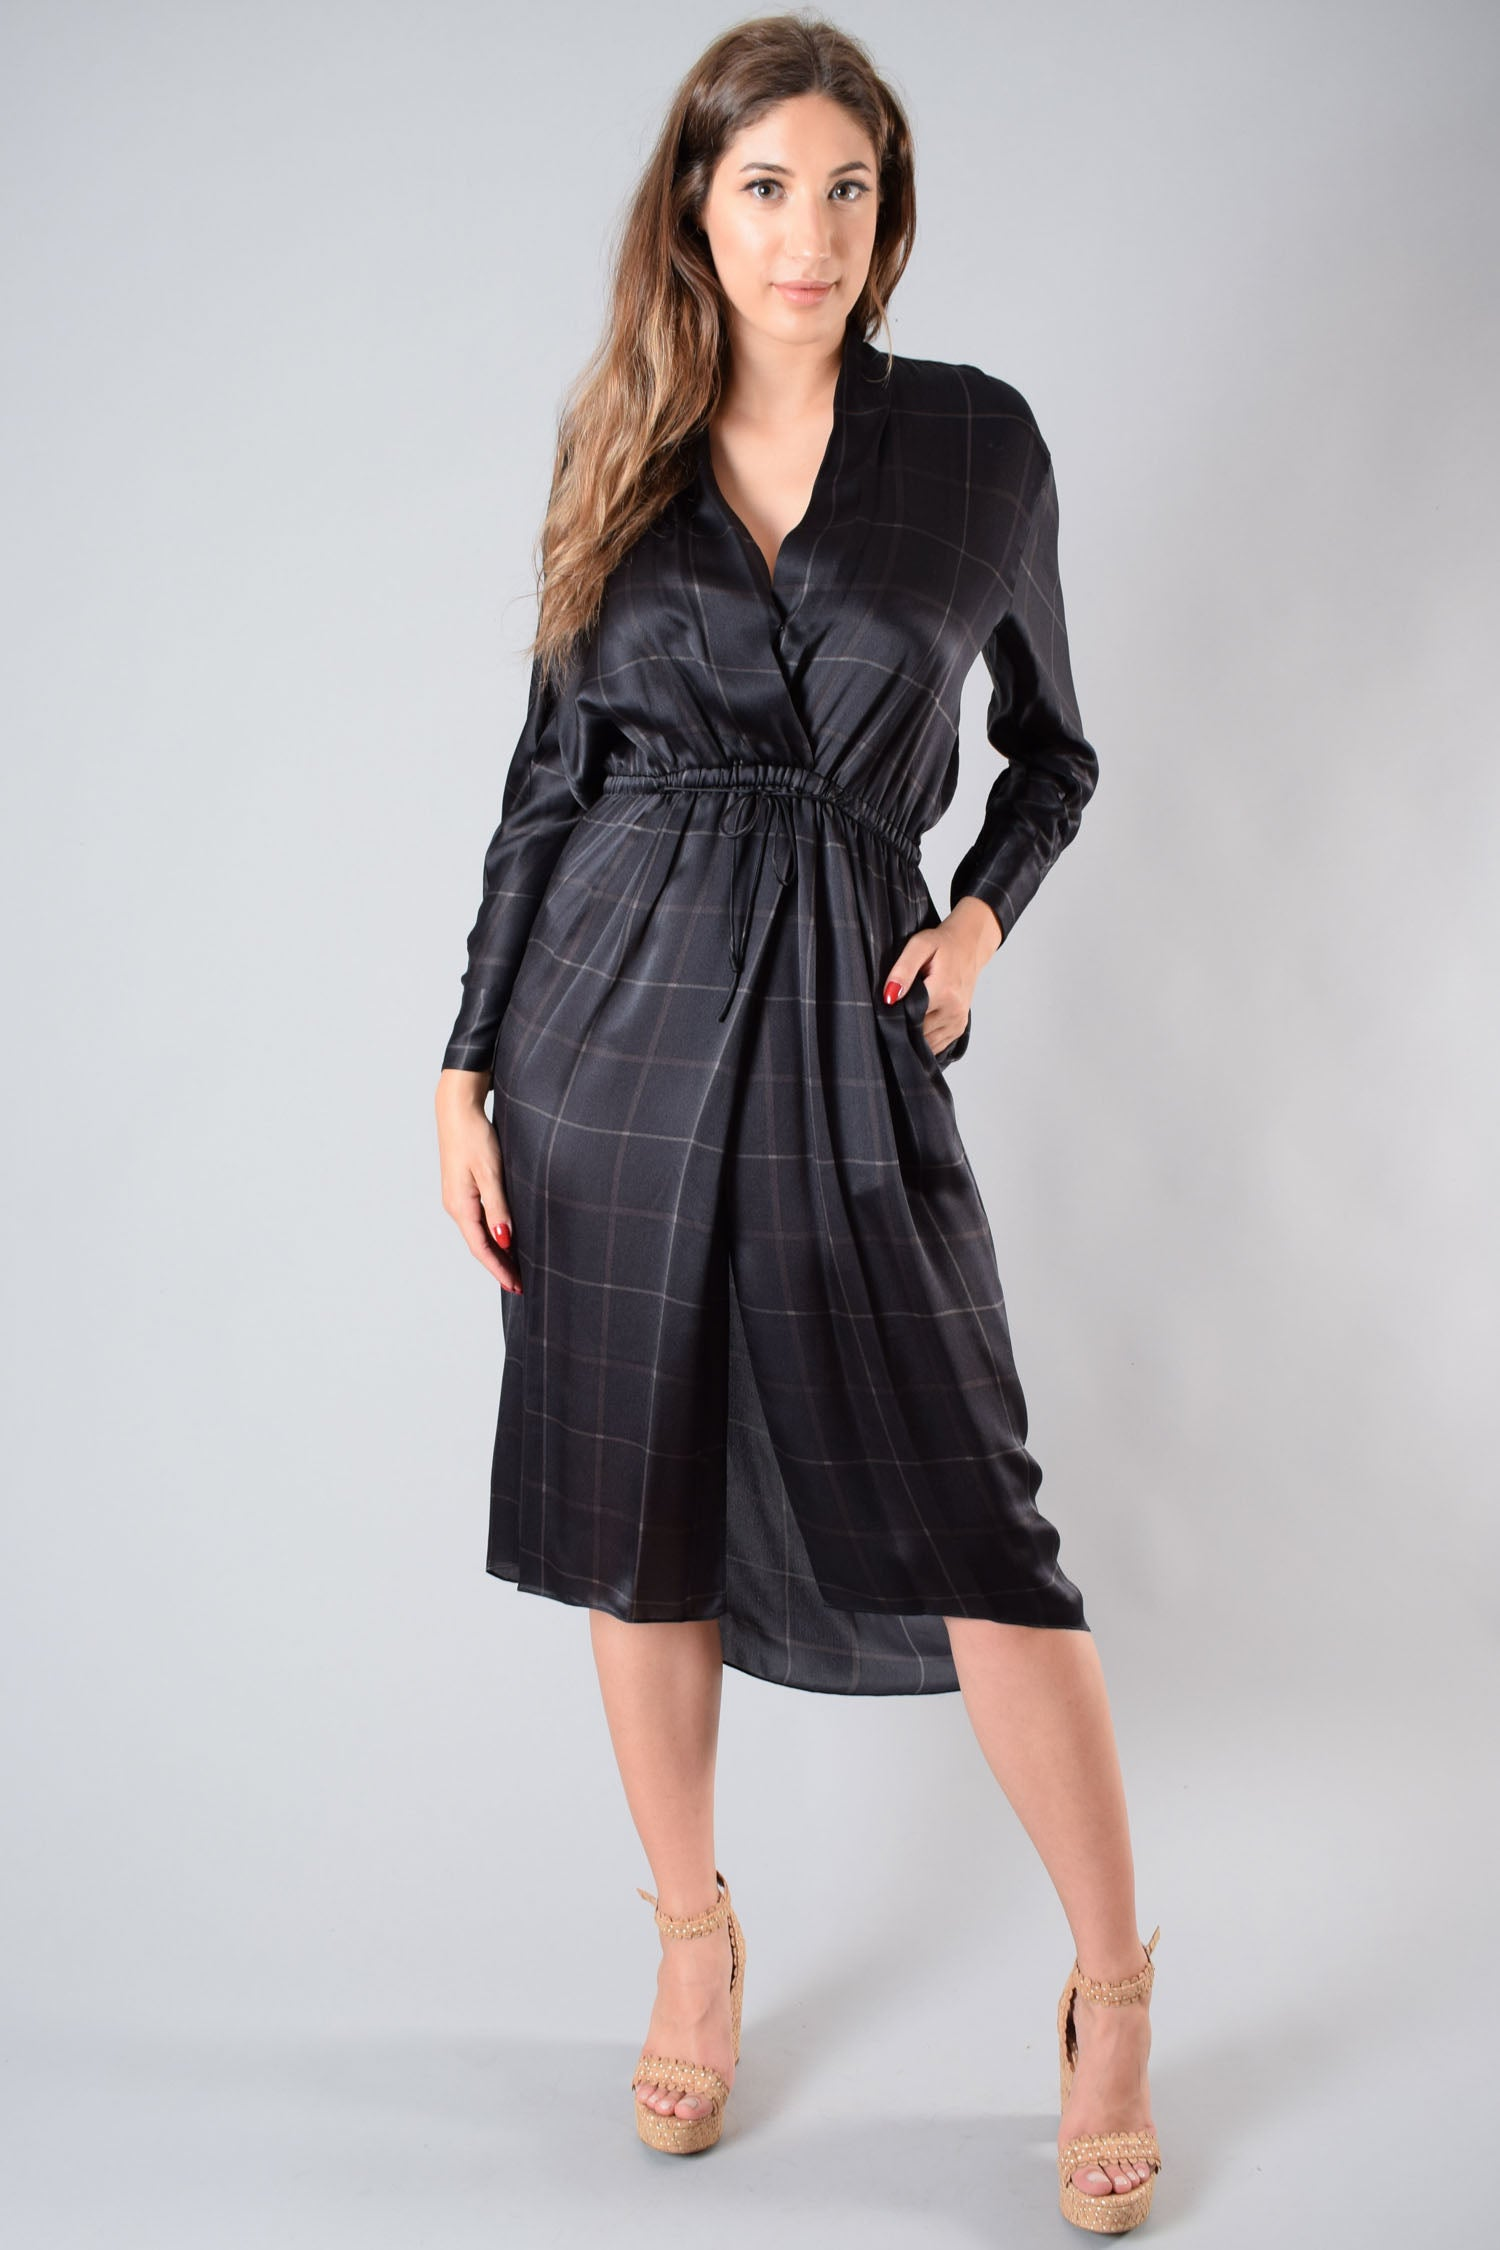 Vince Black Plaid Silk Maxi Dress Size S